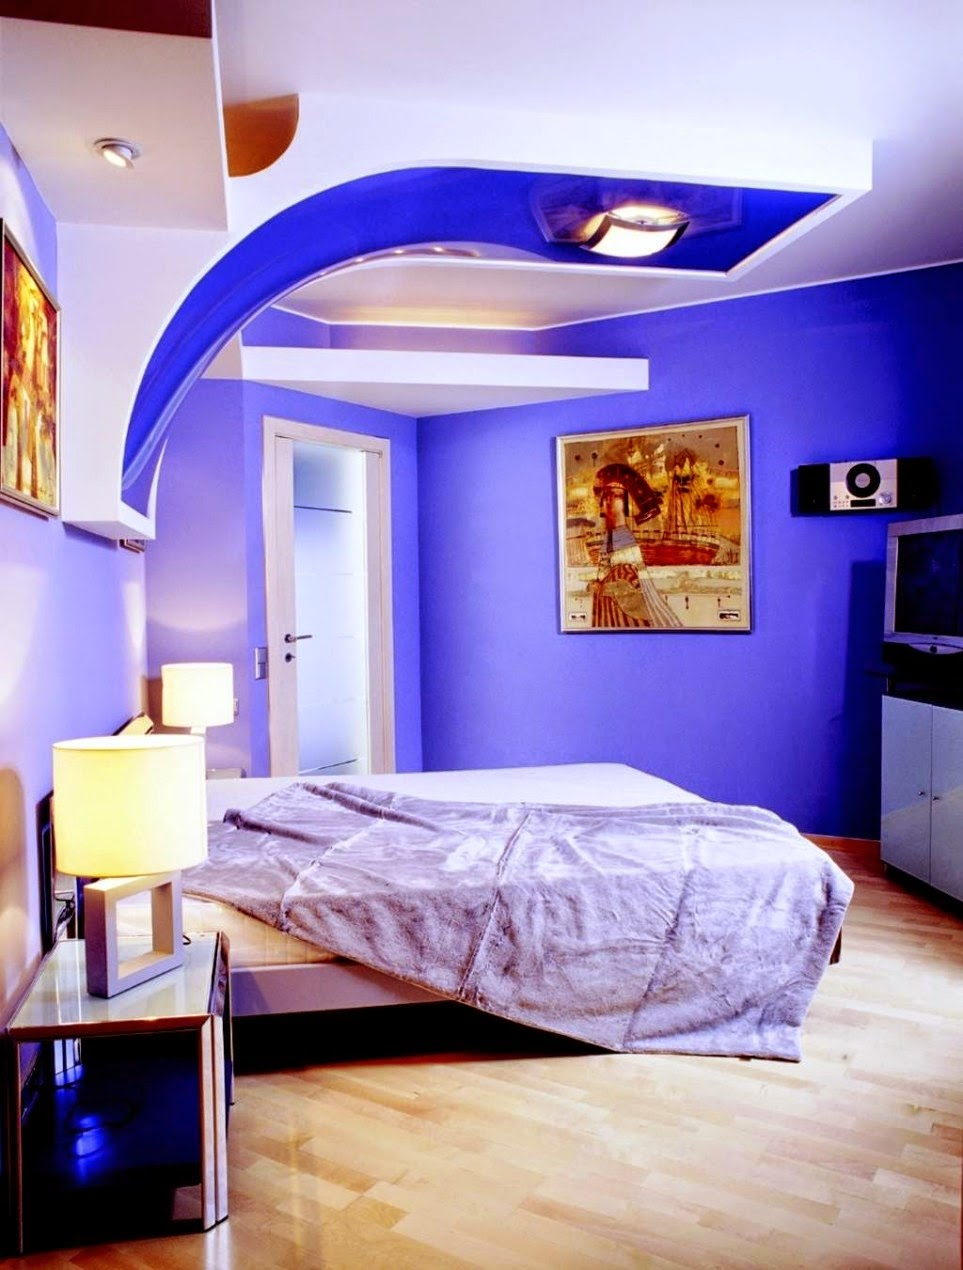 Interior home painting ideas for minimalis bedroom blue concept ...